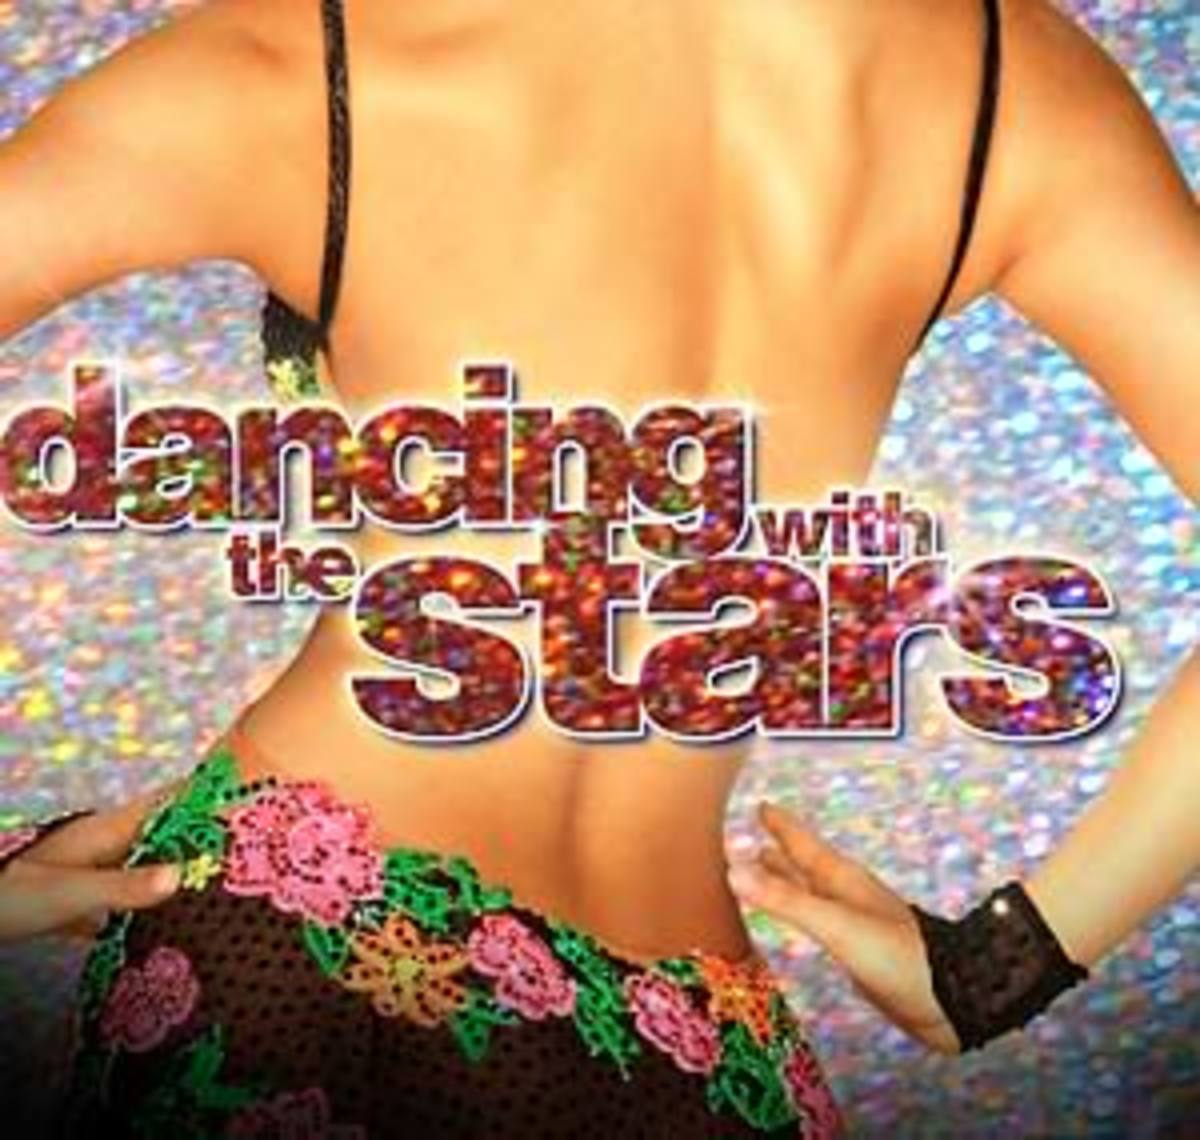 dancingwiththestars.jpg picture by j2k31